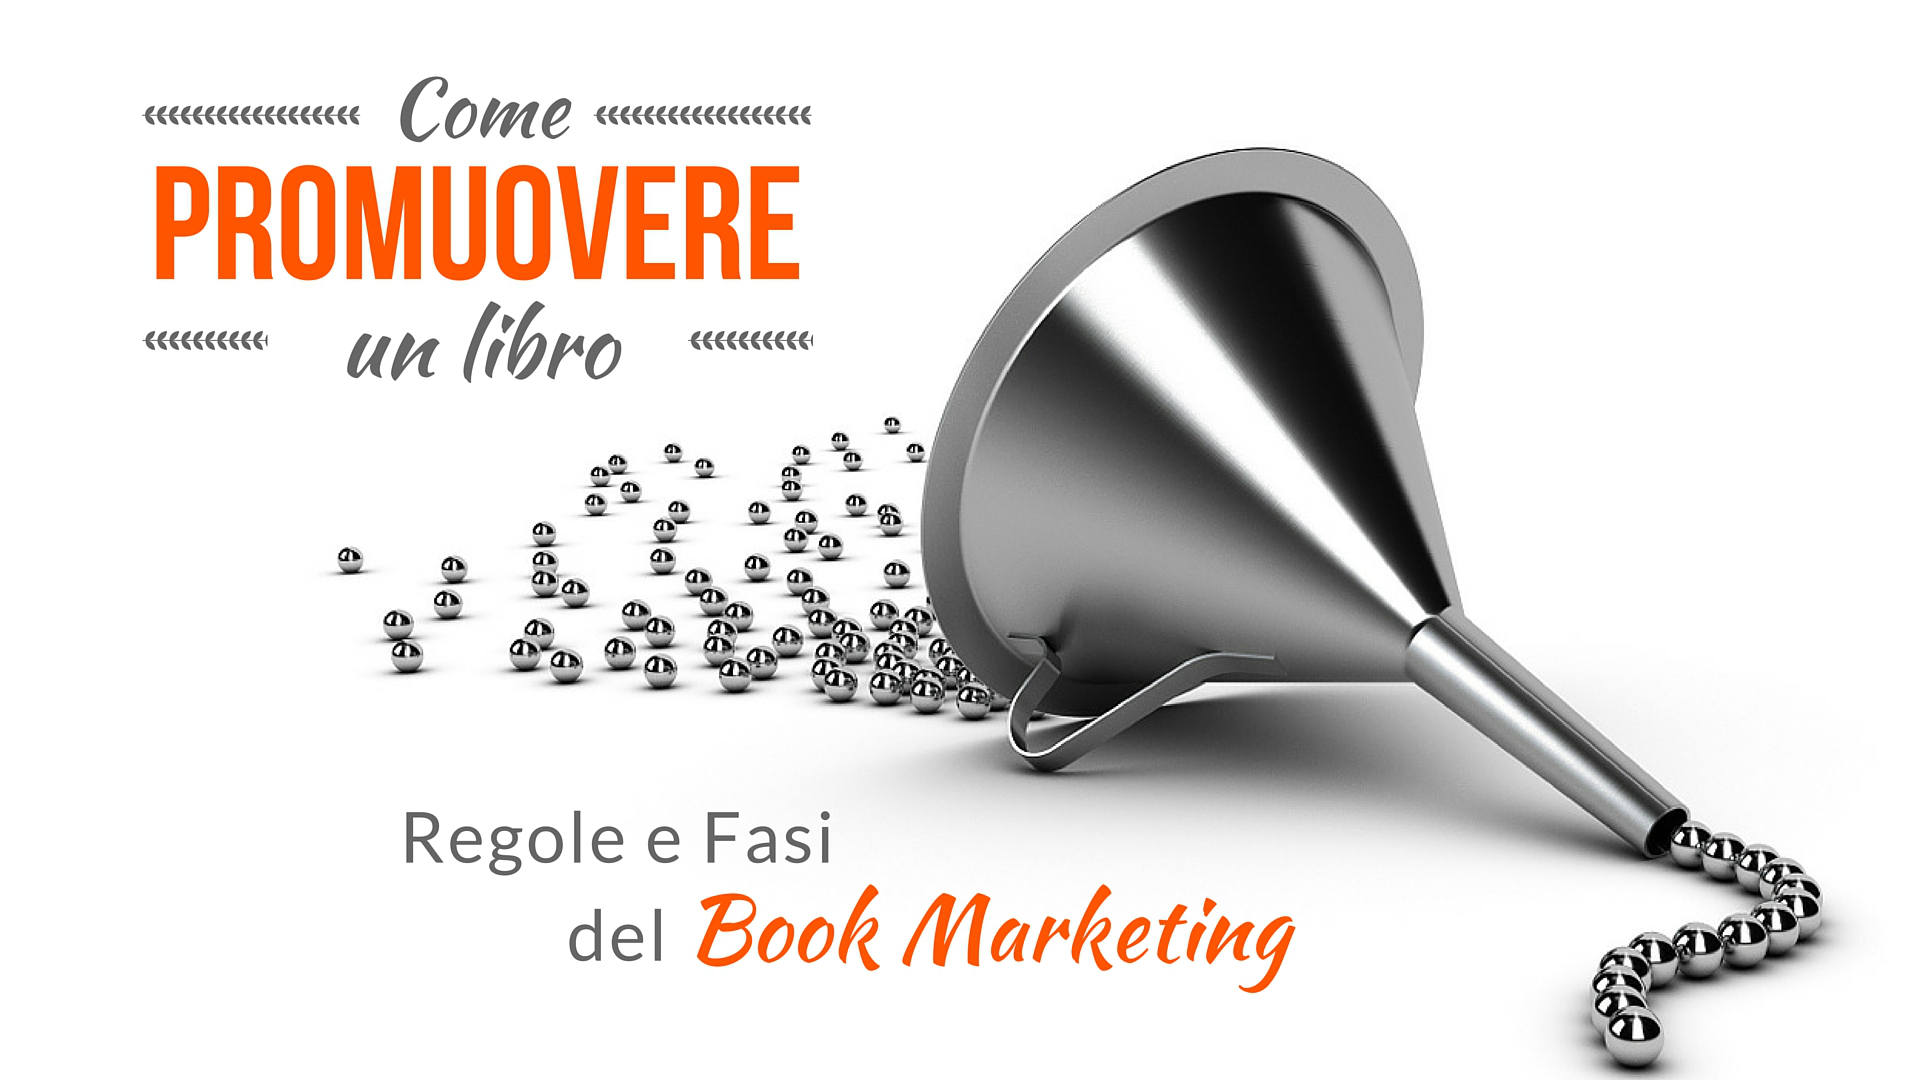 Come promuovere un libro: regole e fasi del book marketing